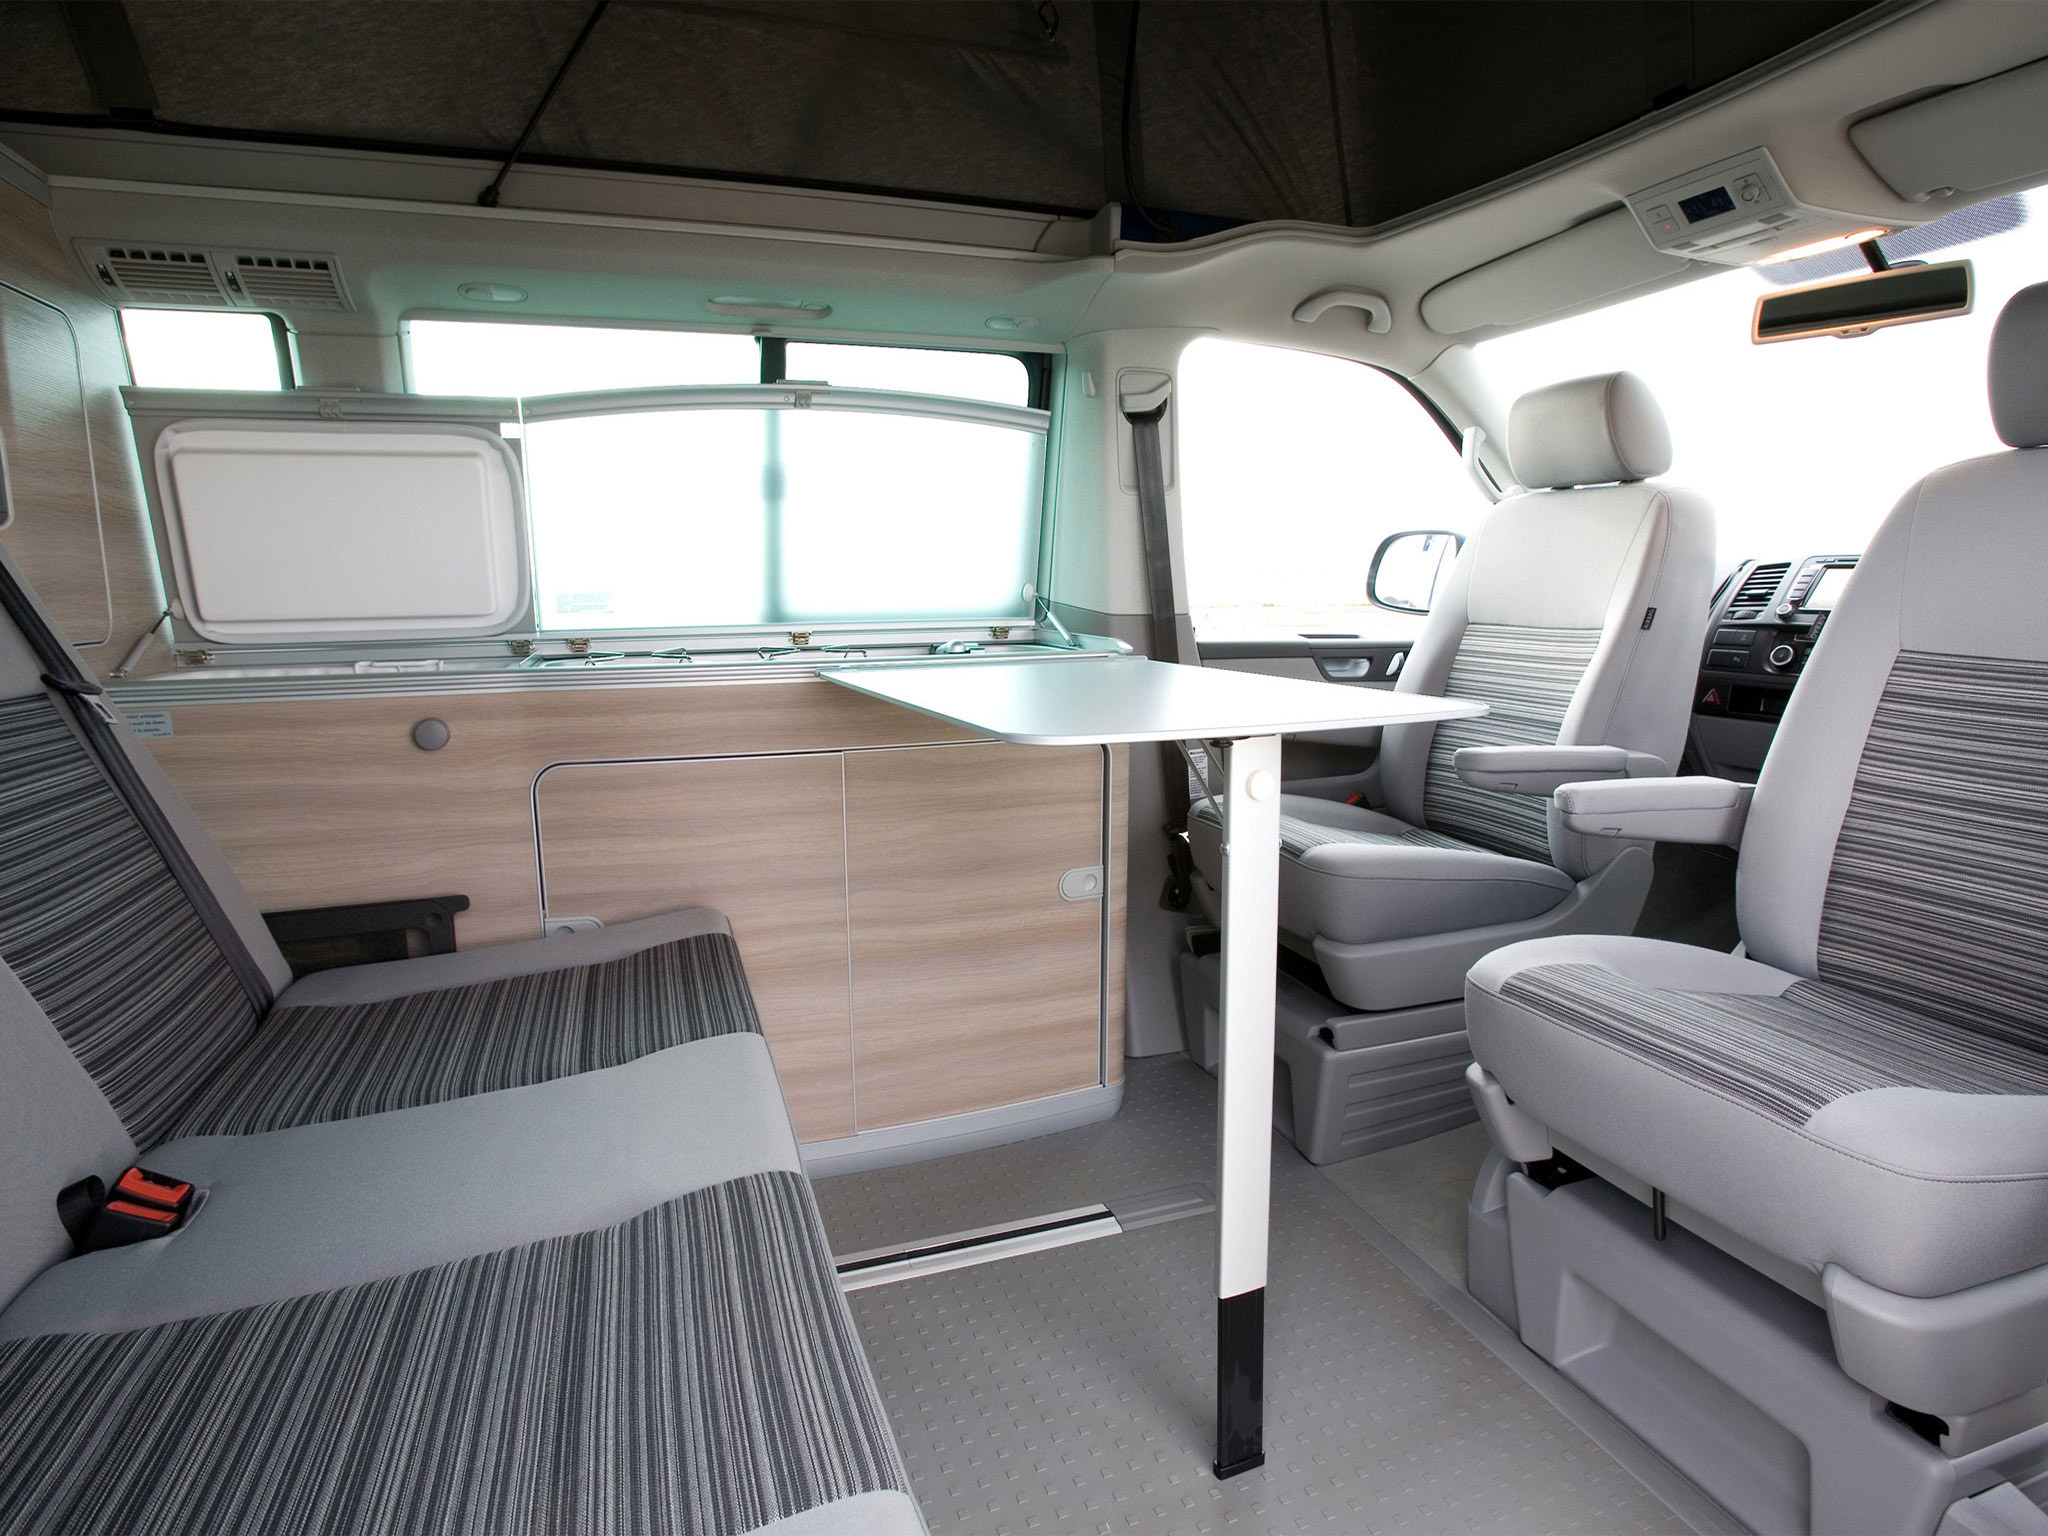 alquiler camper vw california en madrid take a van. Black Bedroom Furniture Sets. Home Design Ideas